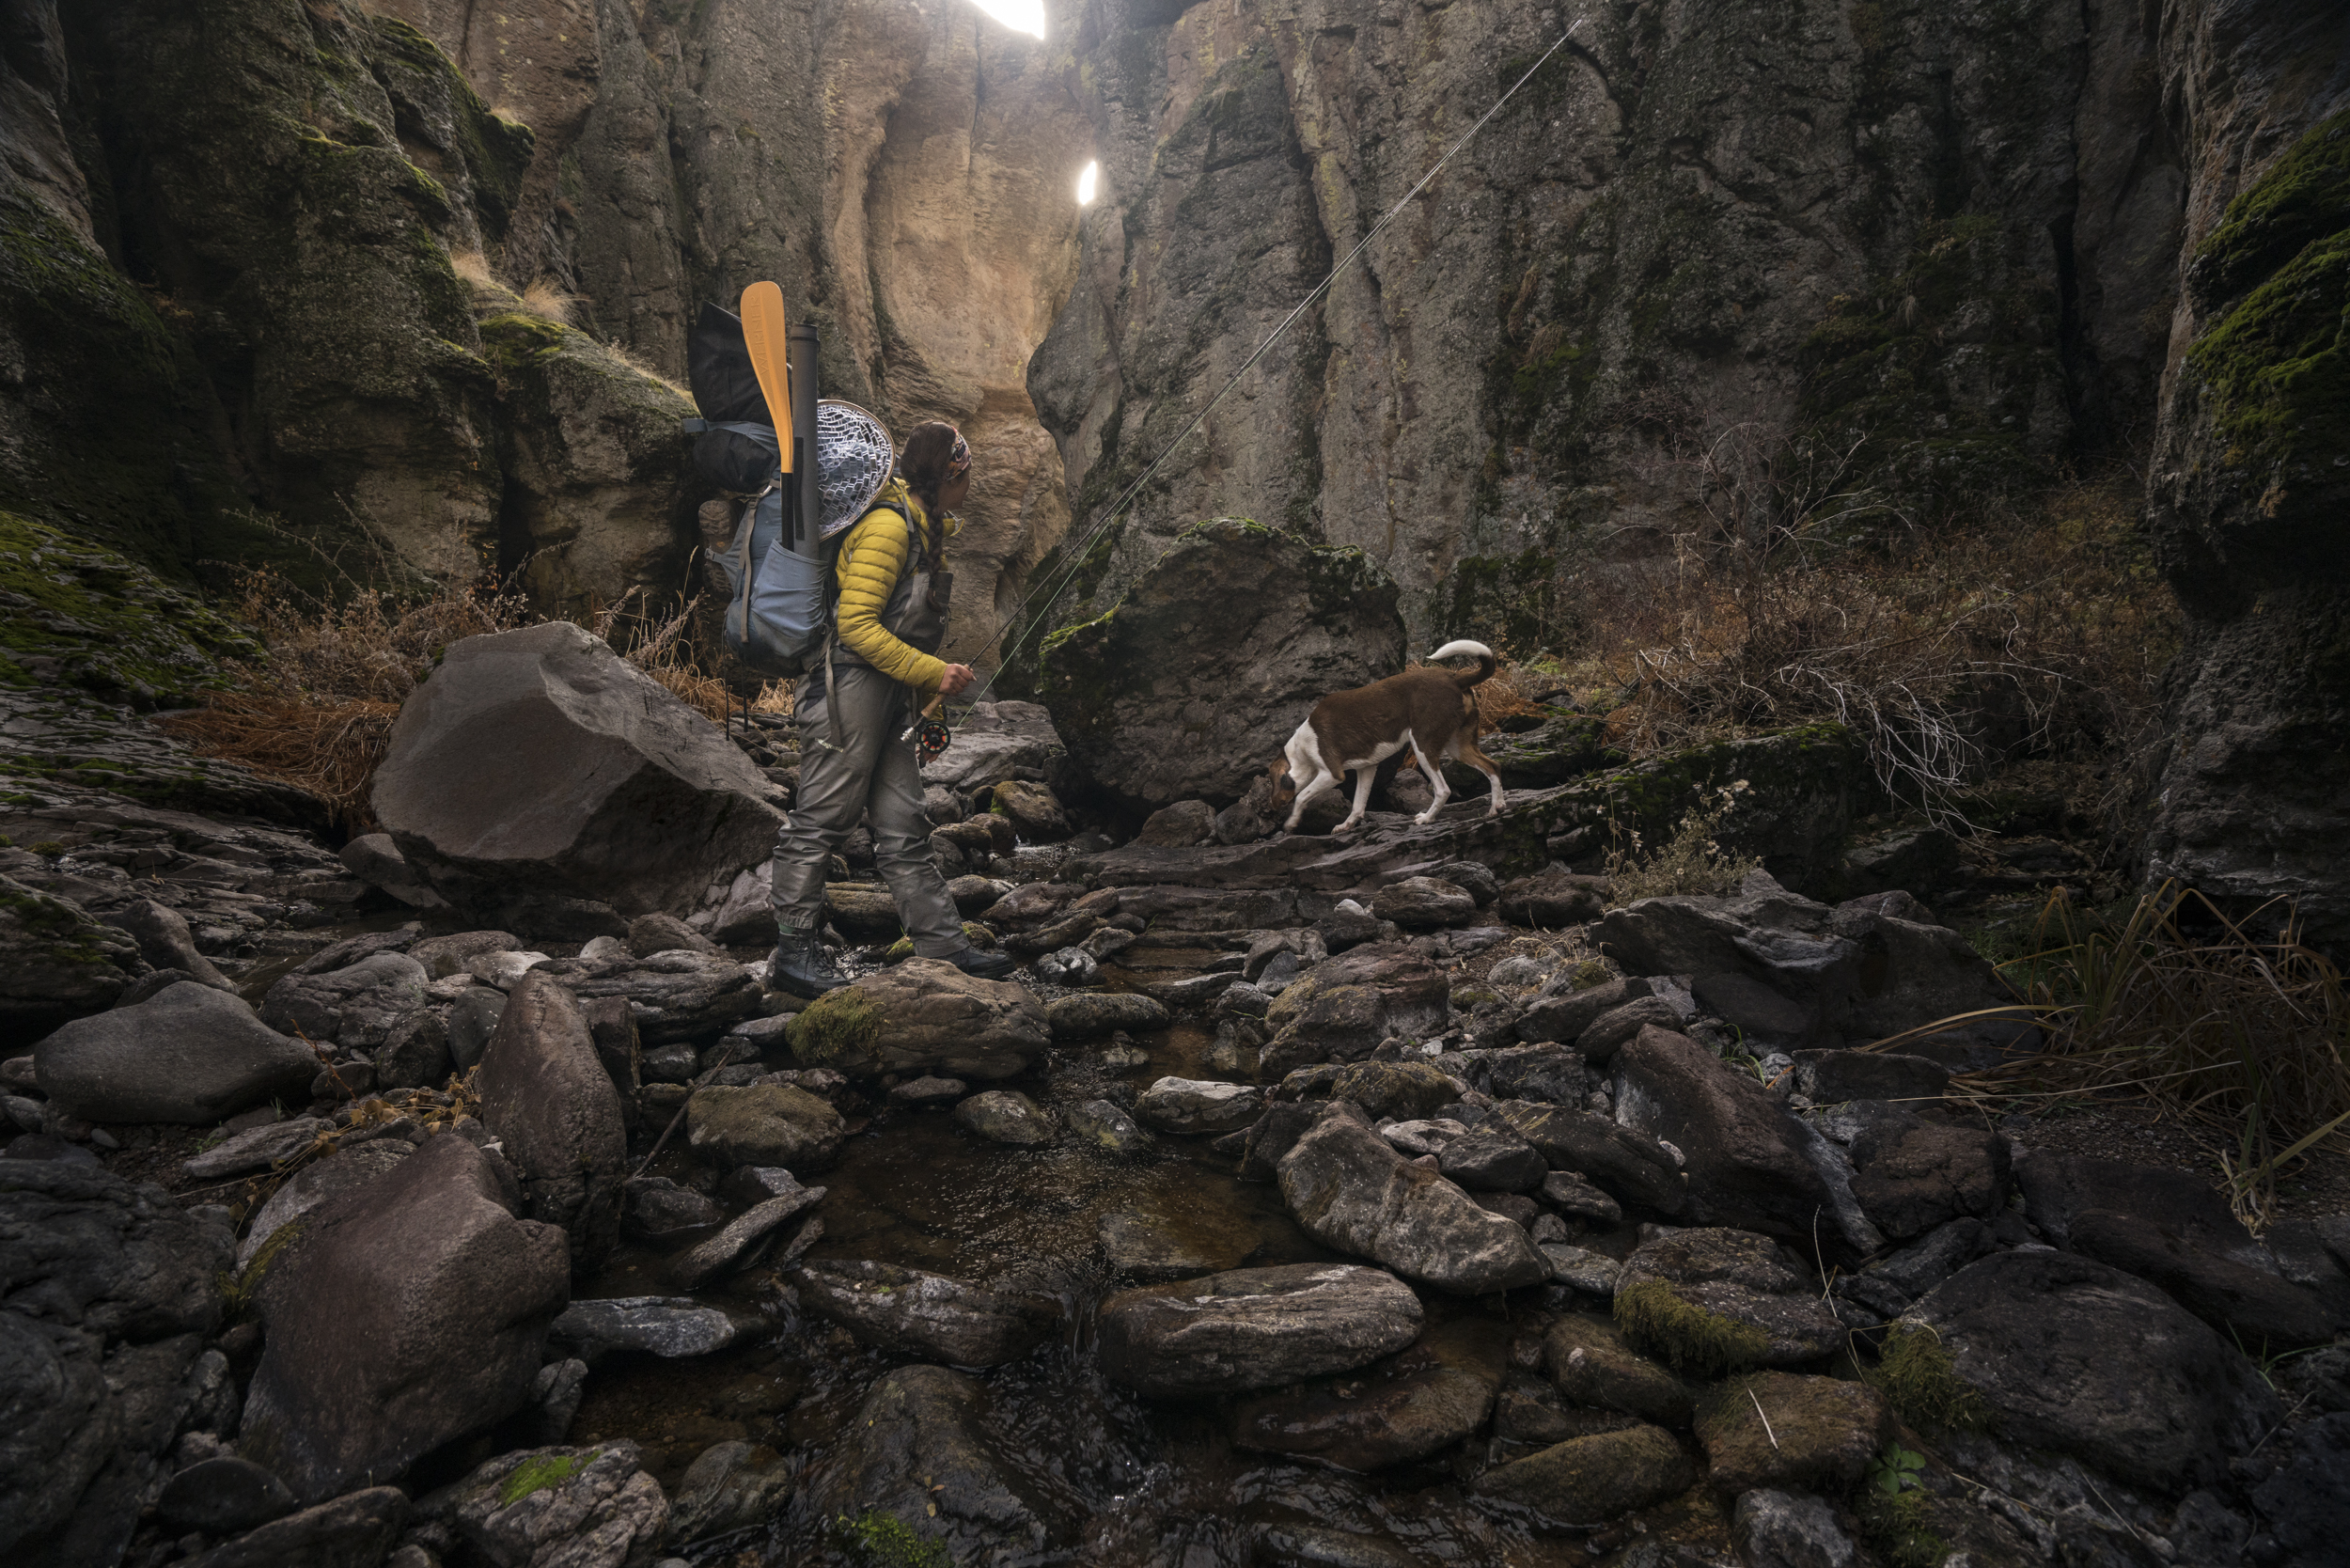 Descending into the underworld of Oregon's Owyhee Canyonlands, a hiker and her nimble hound navigate a labyrinth of steep walls and hoodoo spires in search of native redband trout.  Middle Fork Owyhee River, Oregon